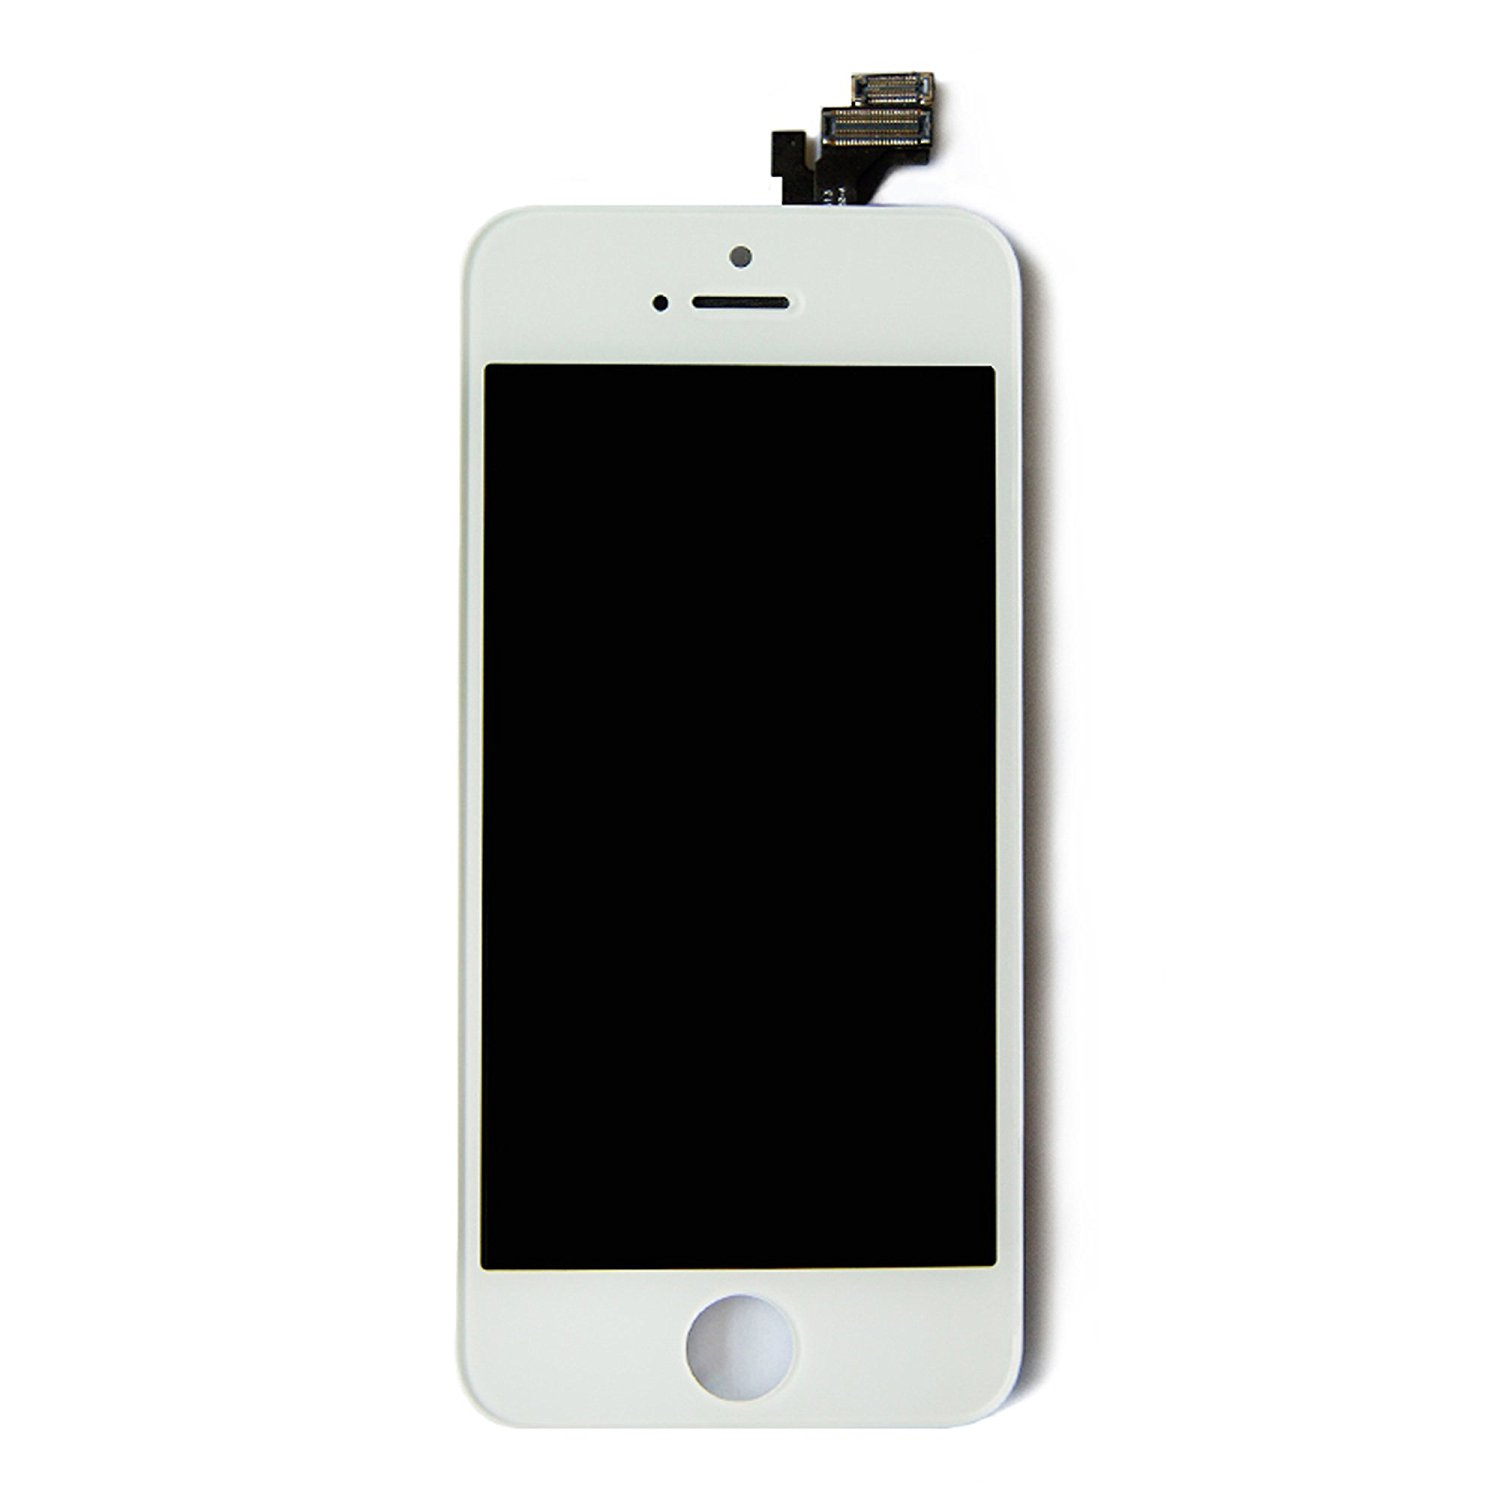 iphone 5 screen replacement iphone 5 5g screen lcd display and touch glass digitizer 1097